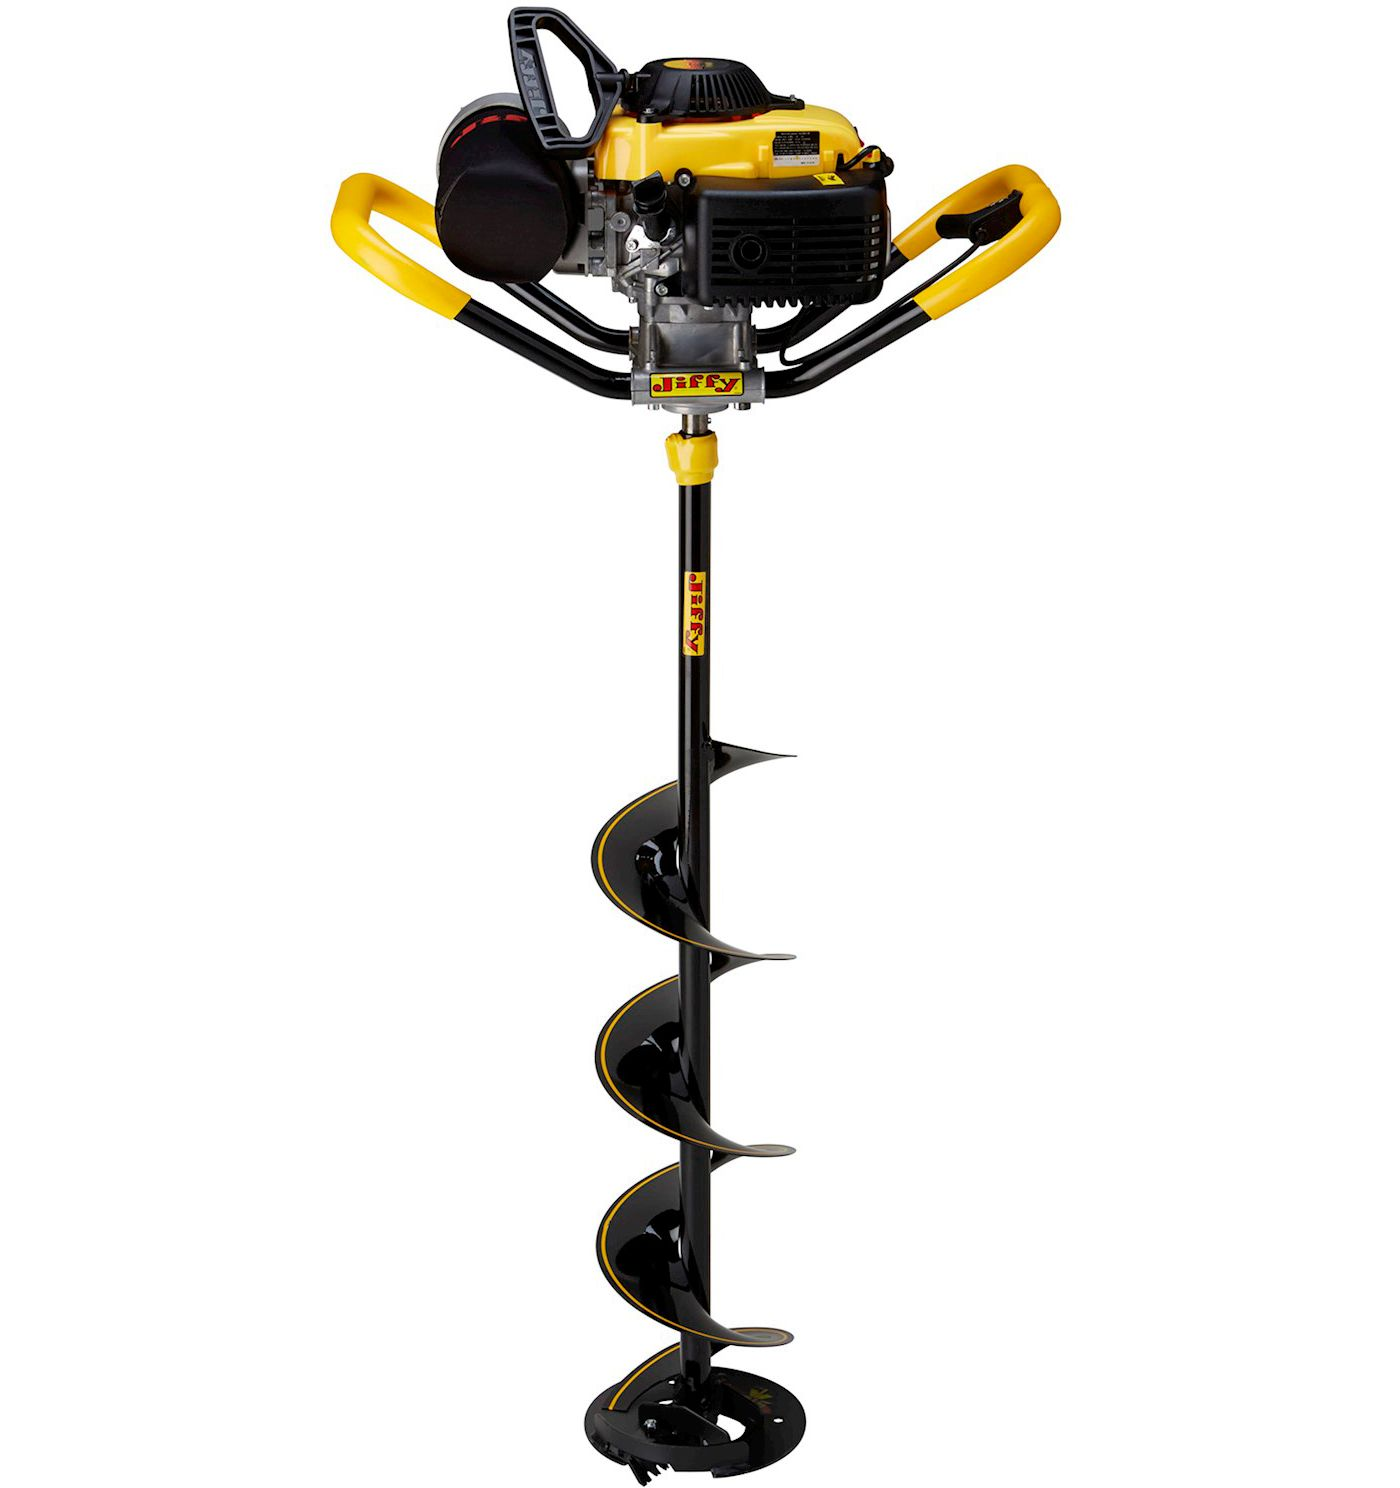 Jiffy X-Treme Propane Ice Auger